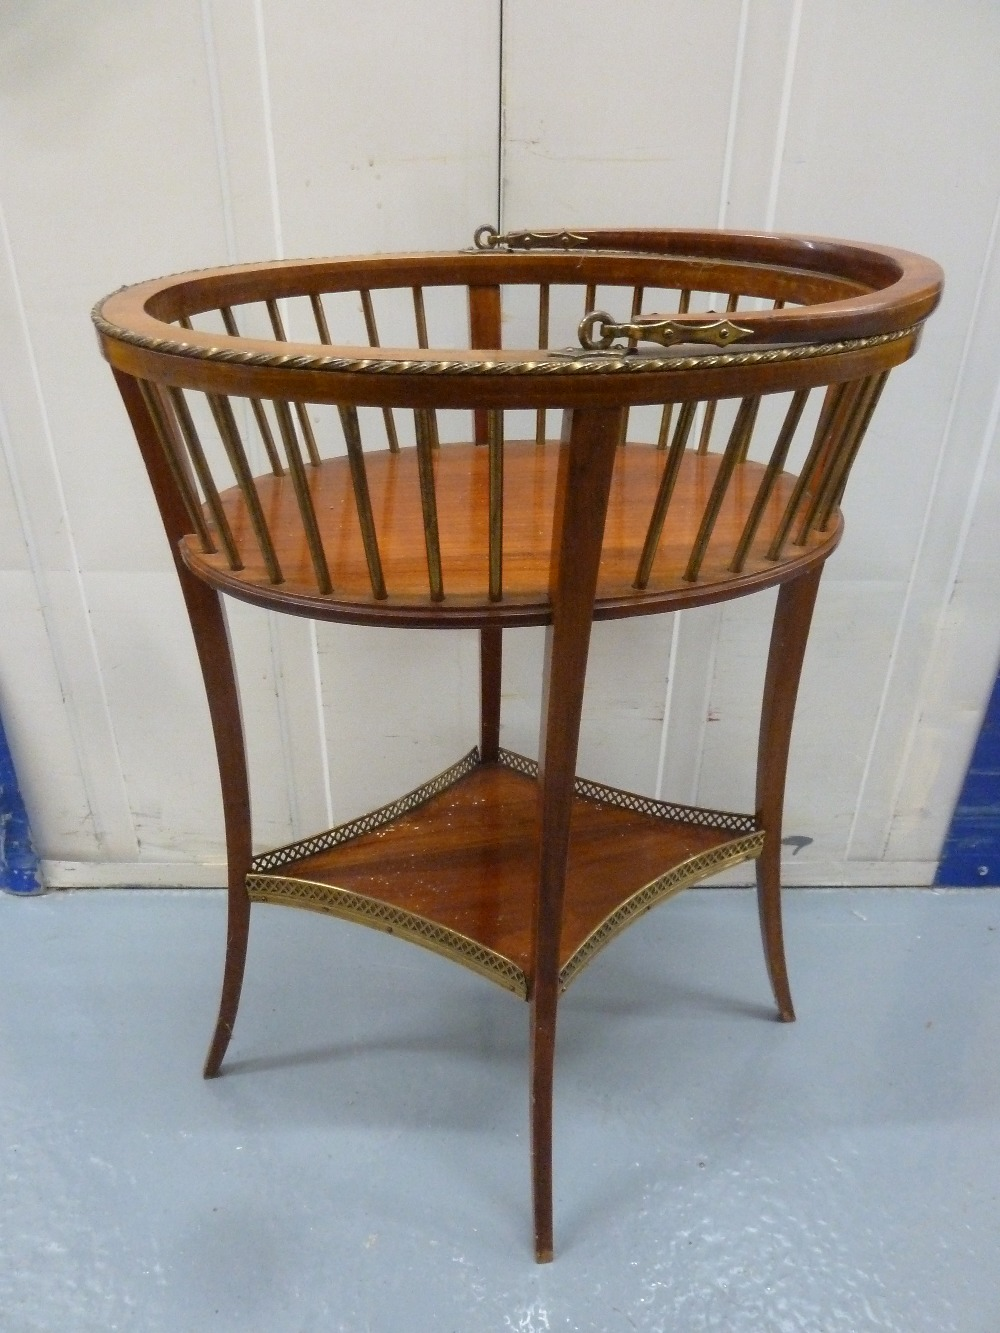 Lot 38 - An oval wooden plant stand with slatted sides, swing handle on four cabriole legs